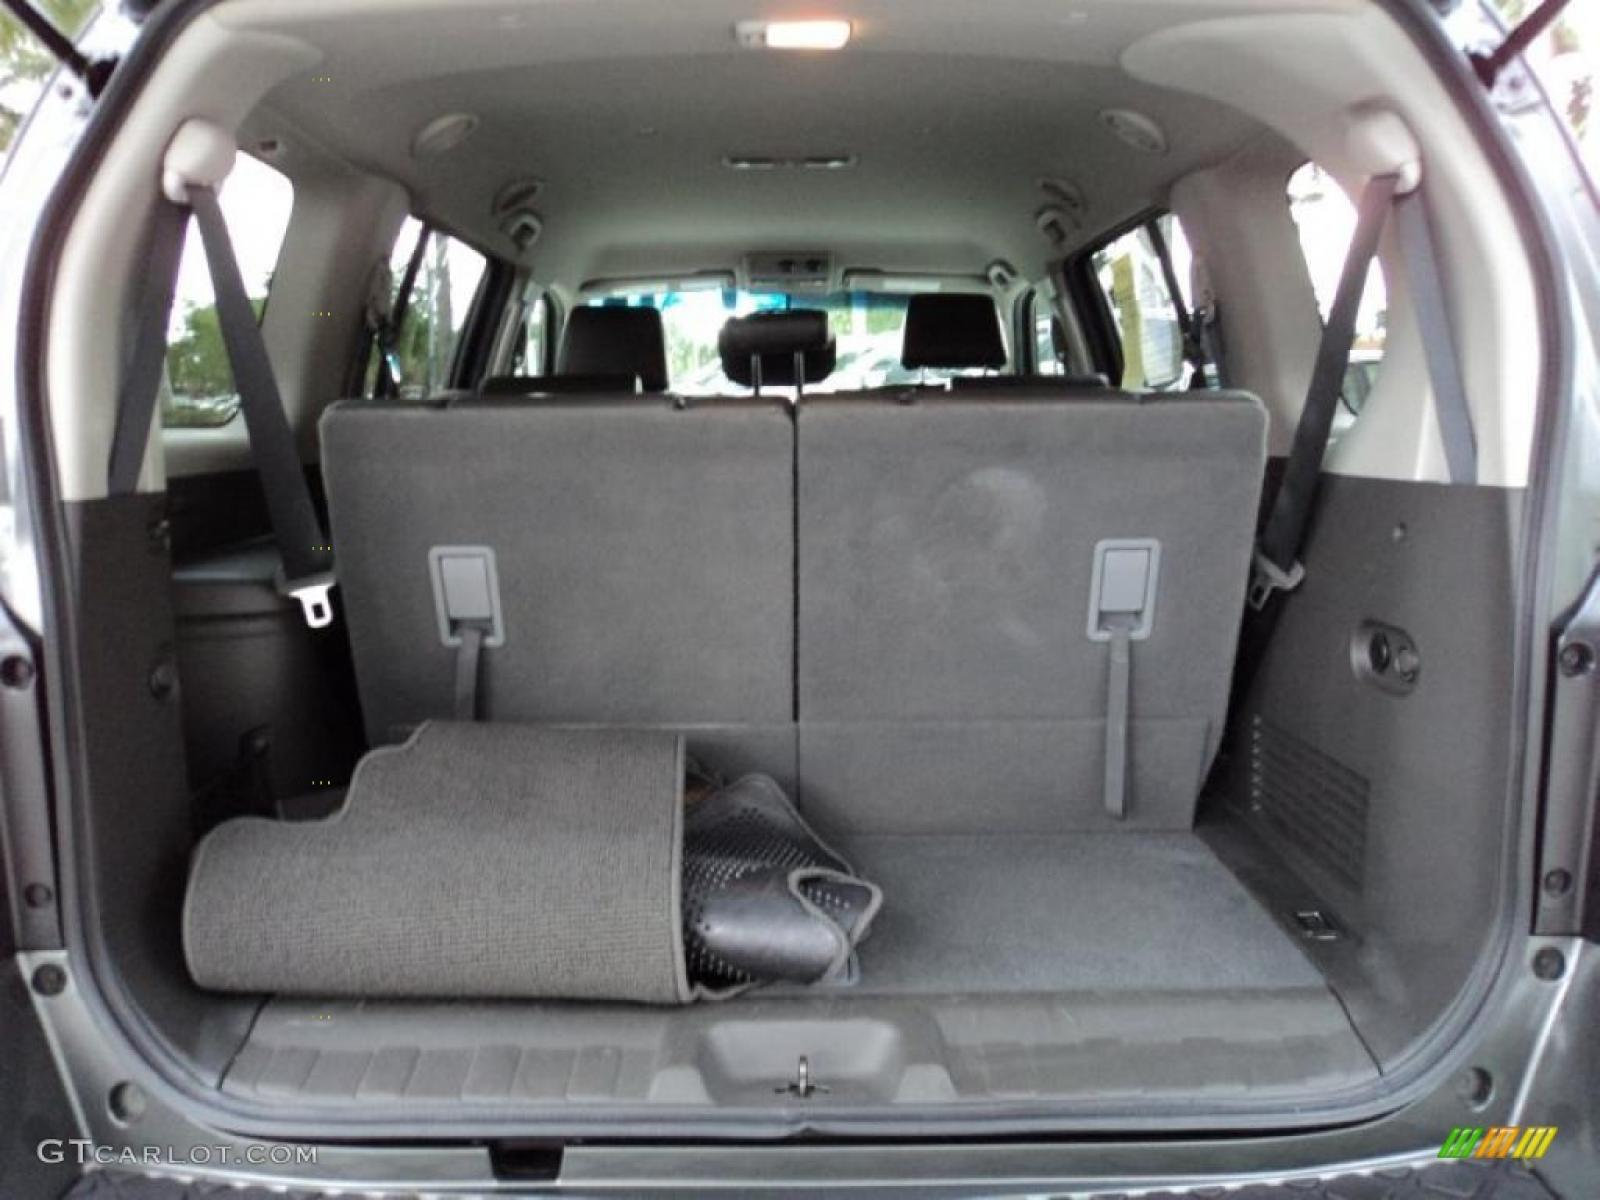 2009 nissan pathfinder information and photos zombiedrive 2009 nissan pathfinder 3 nissan pathfinder 3 800 1024 1280 1600 origin vanachro Image collections